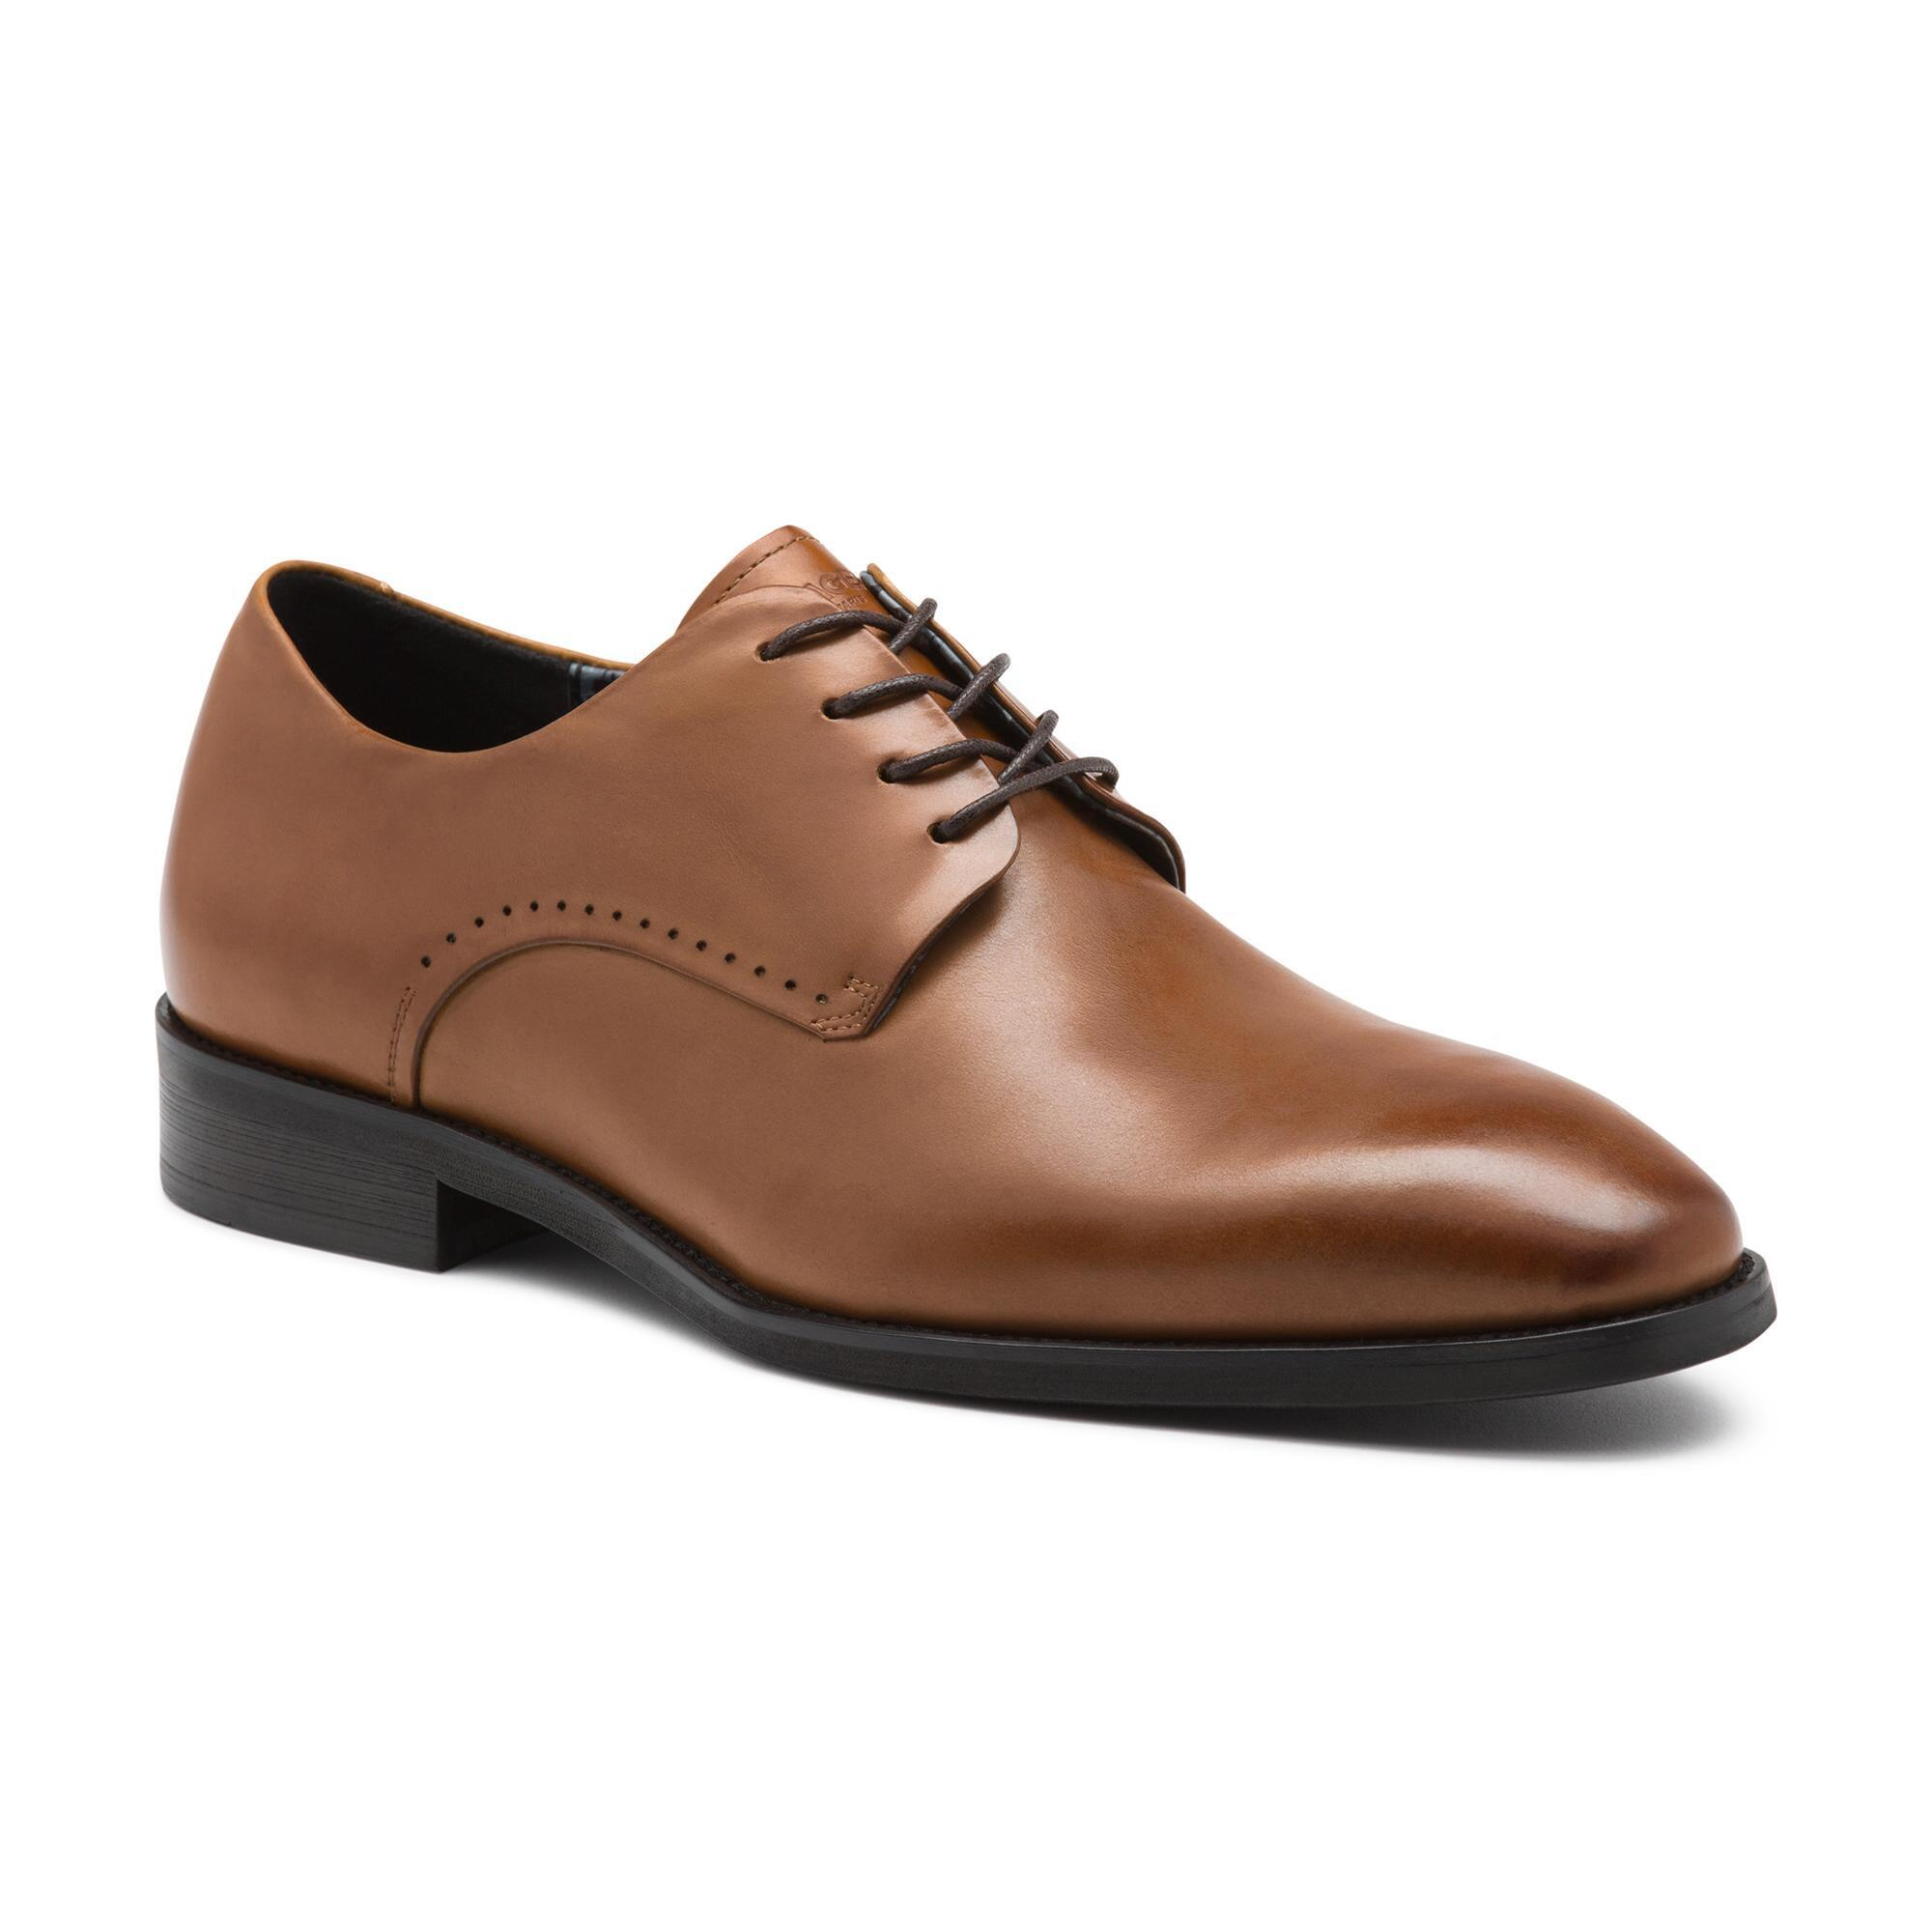 b8075c1ad2d2 Lyst - Karl Lagerfeld Burnished Leather Oxford With Perforation in ...